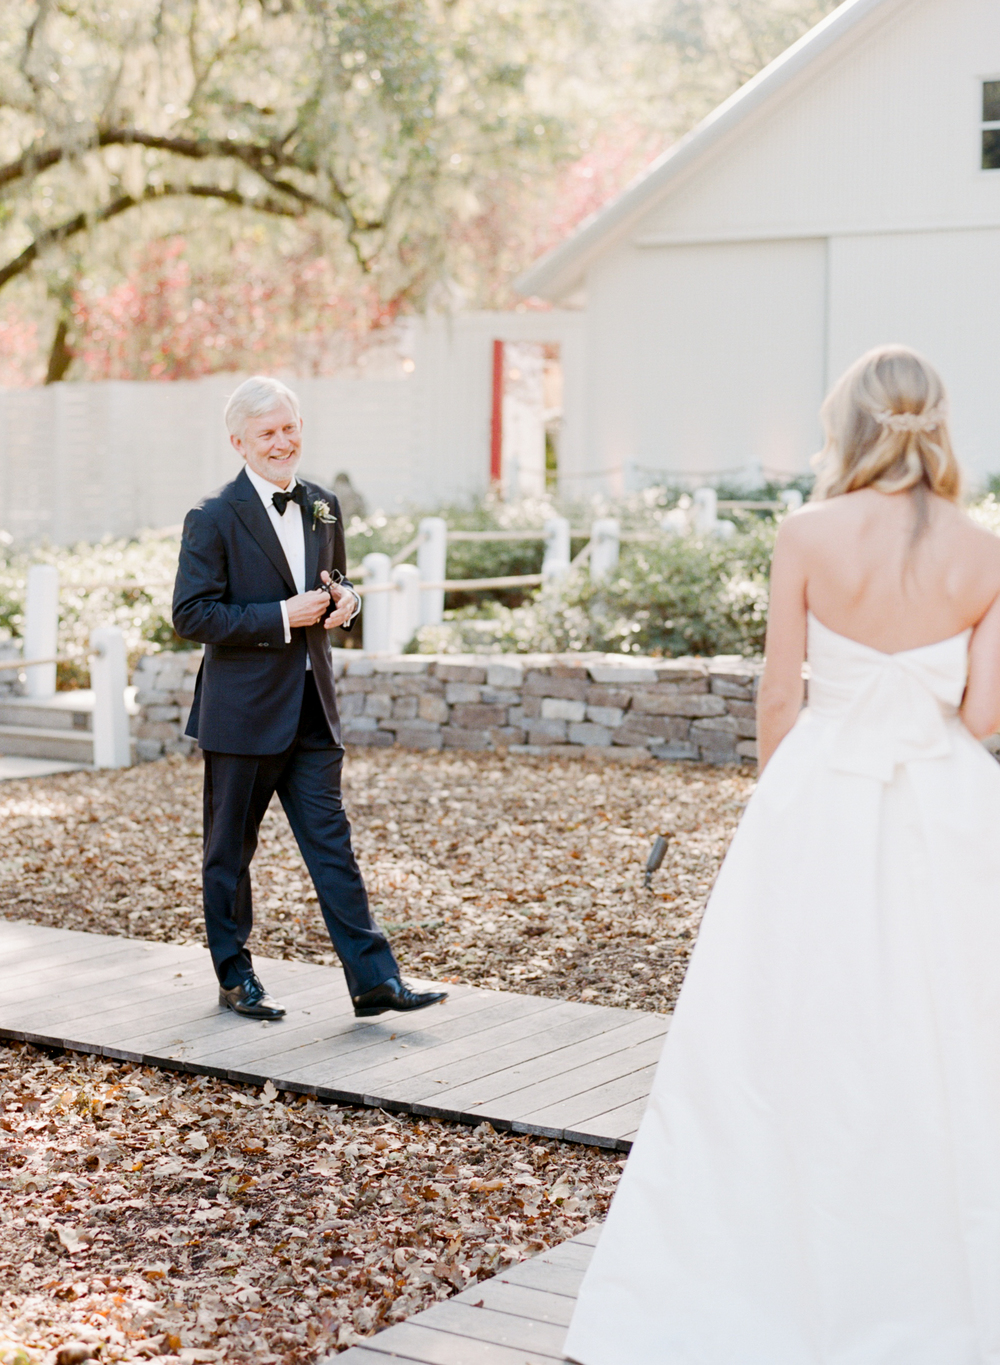 SylvieGil-Durham-Ranch-Organic-Ethereal-Rustic-Father-Wedding